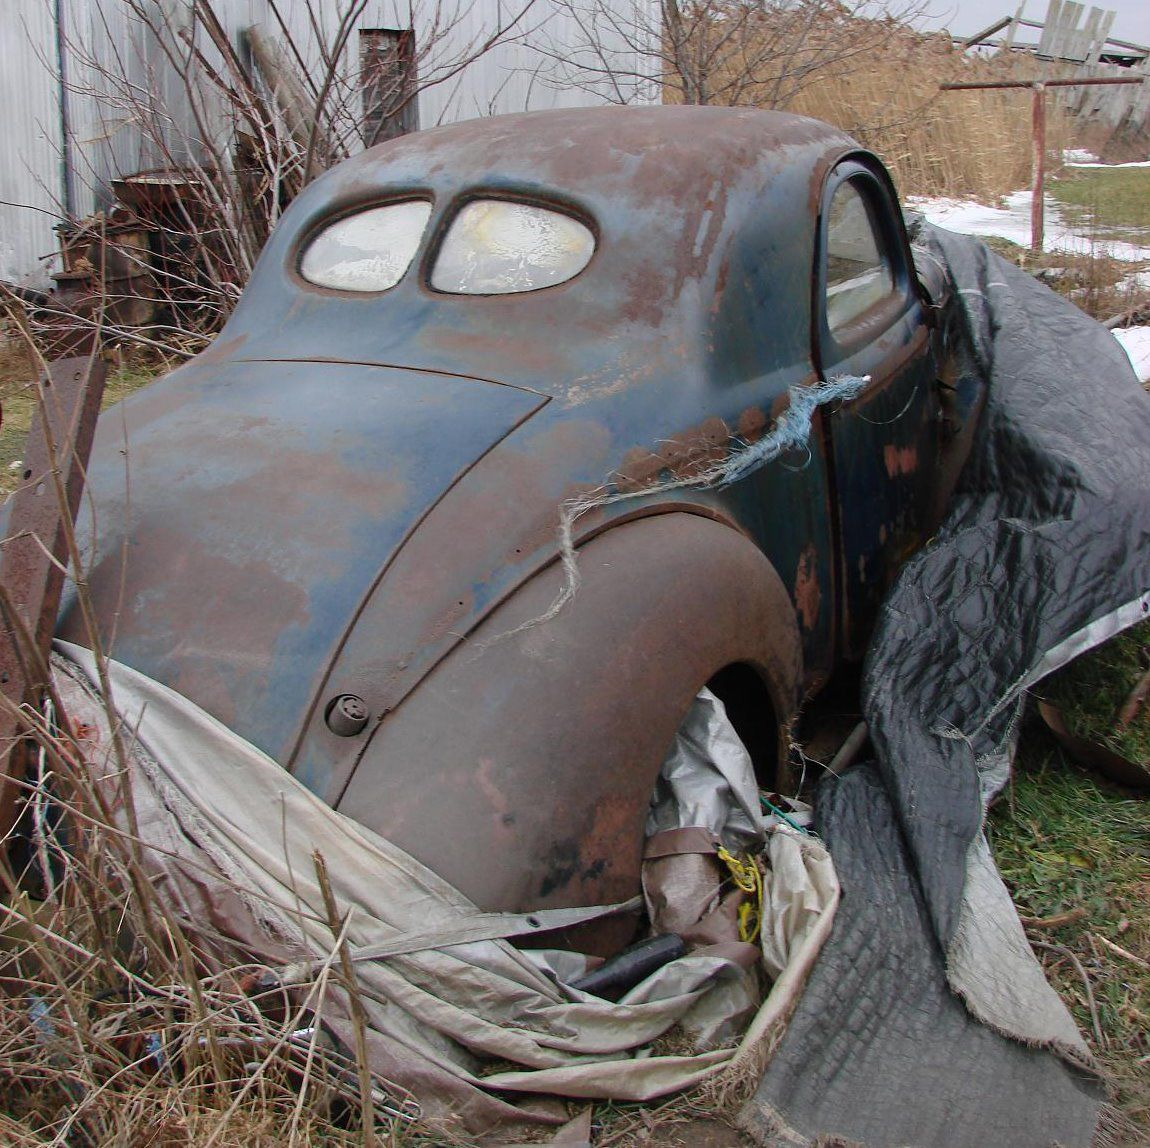 FOR SALE: 1940 WILLYS COUPE  All steel except fiberglass